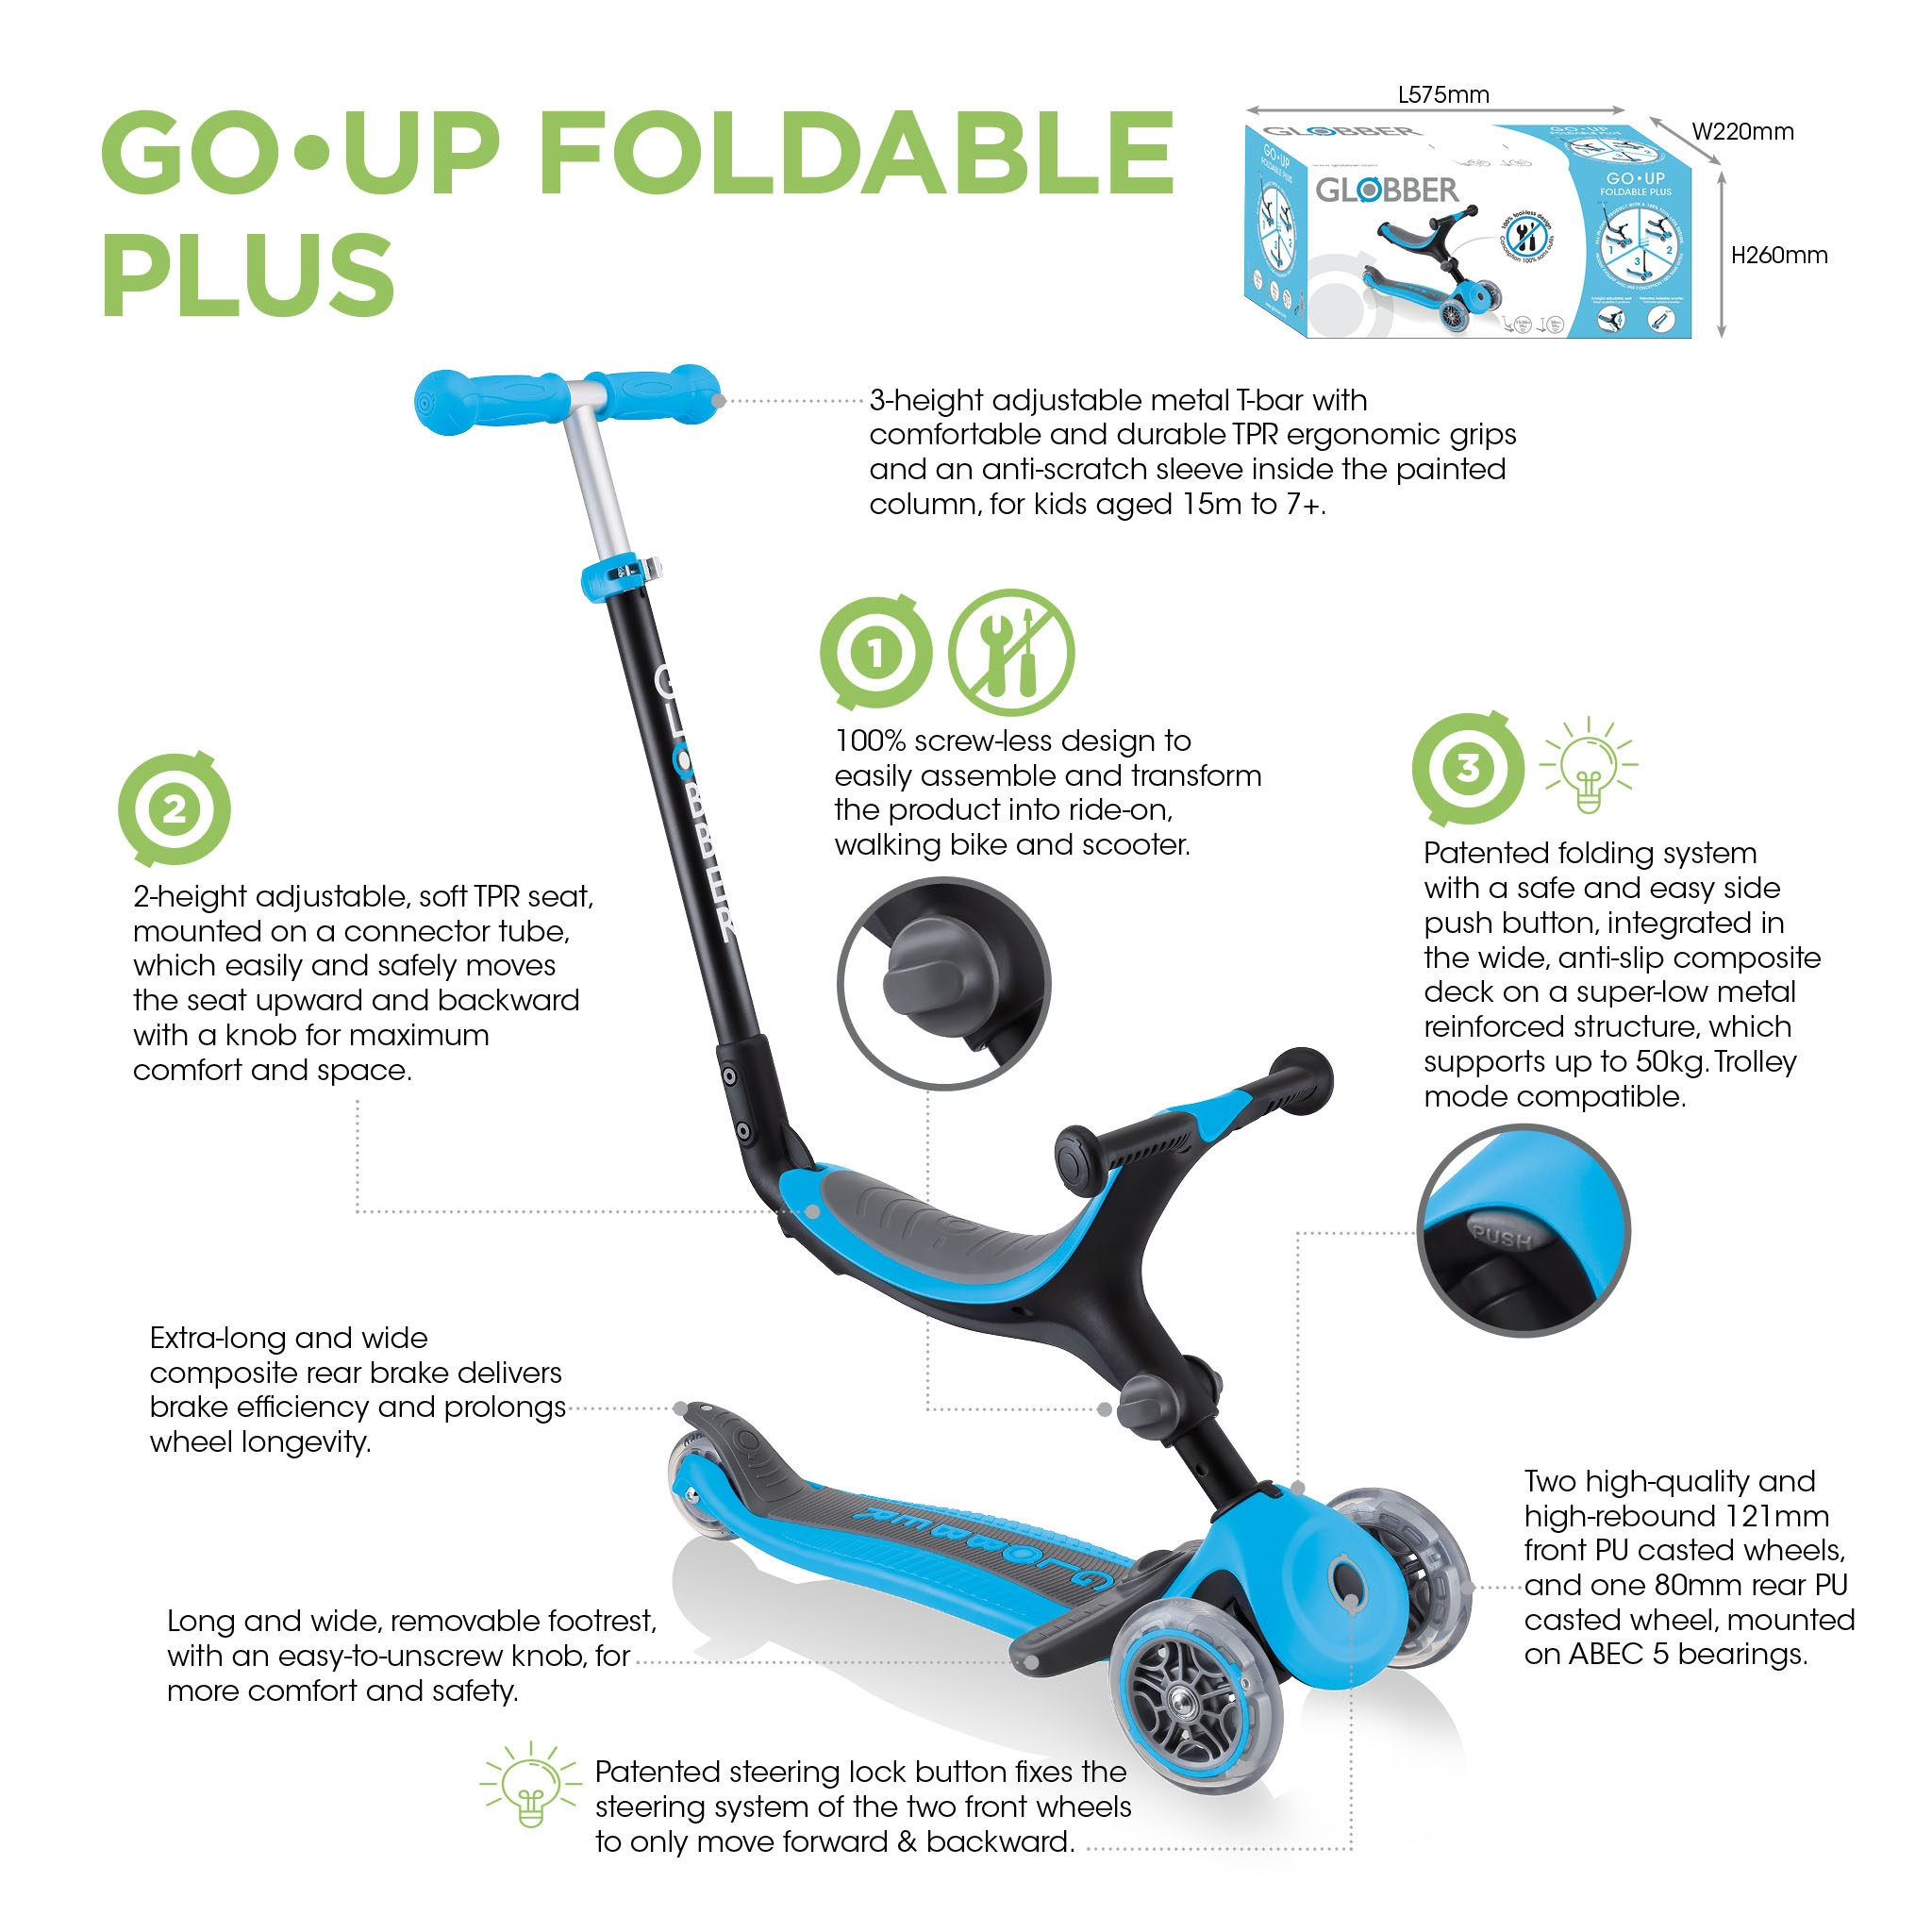 Globber-GO-UP-FOLDABLE-PLUS-scooter-with-seat-for-toddlers 3